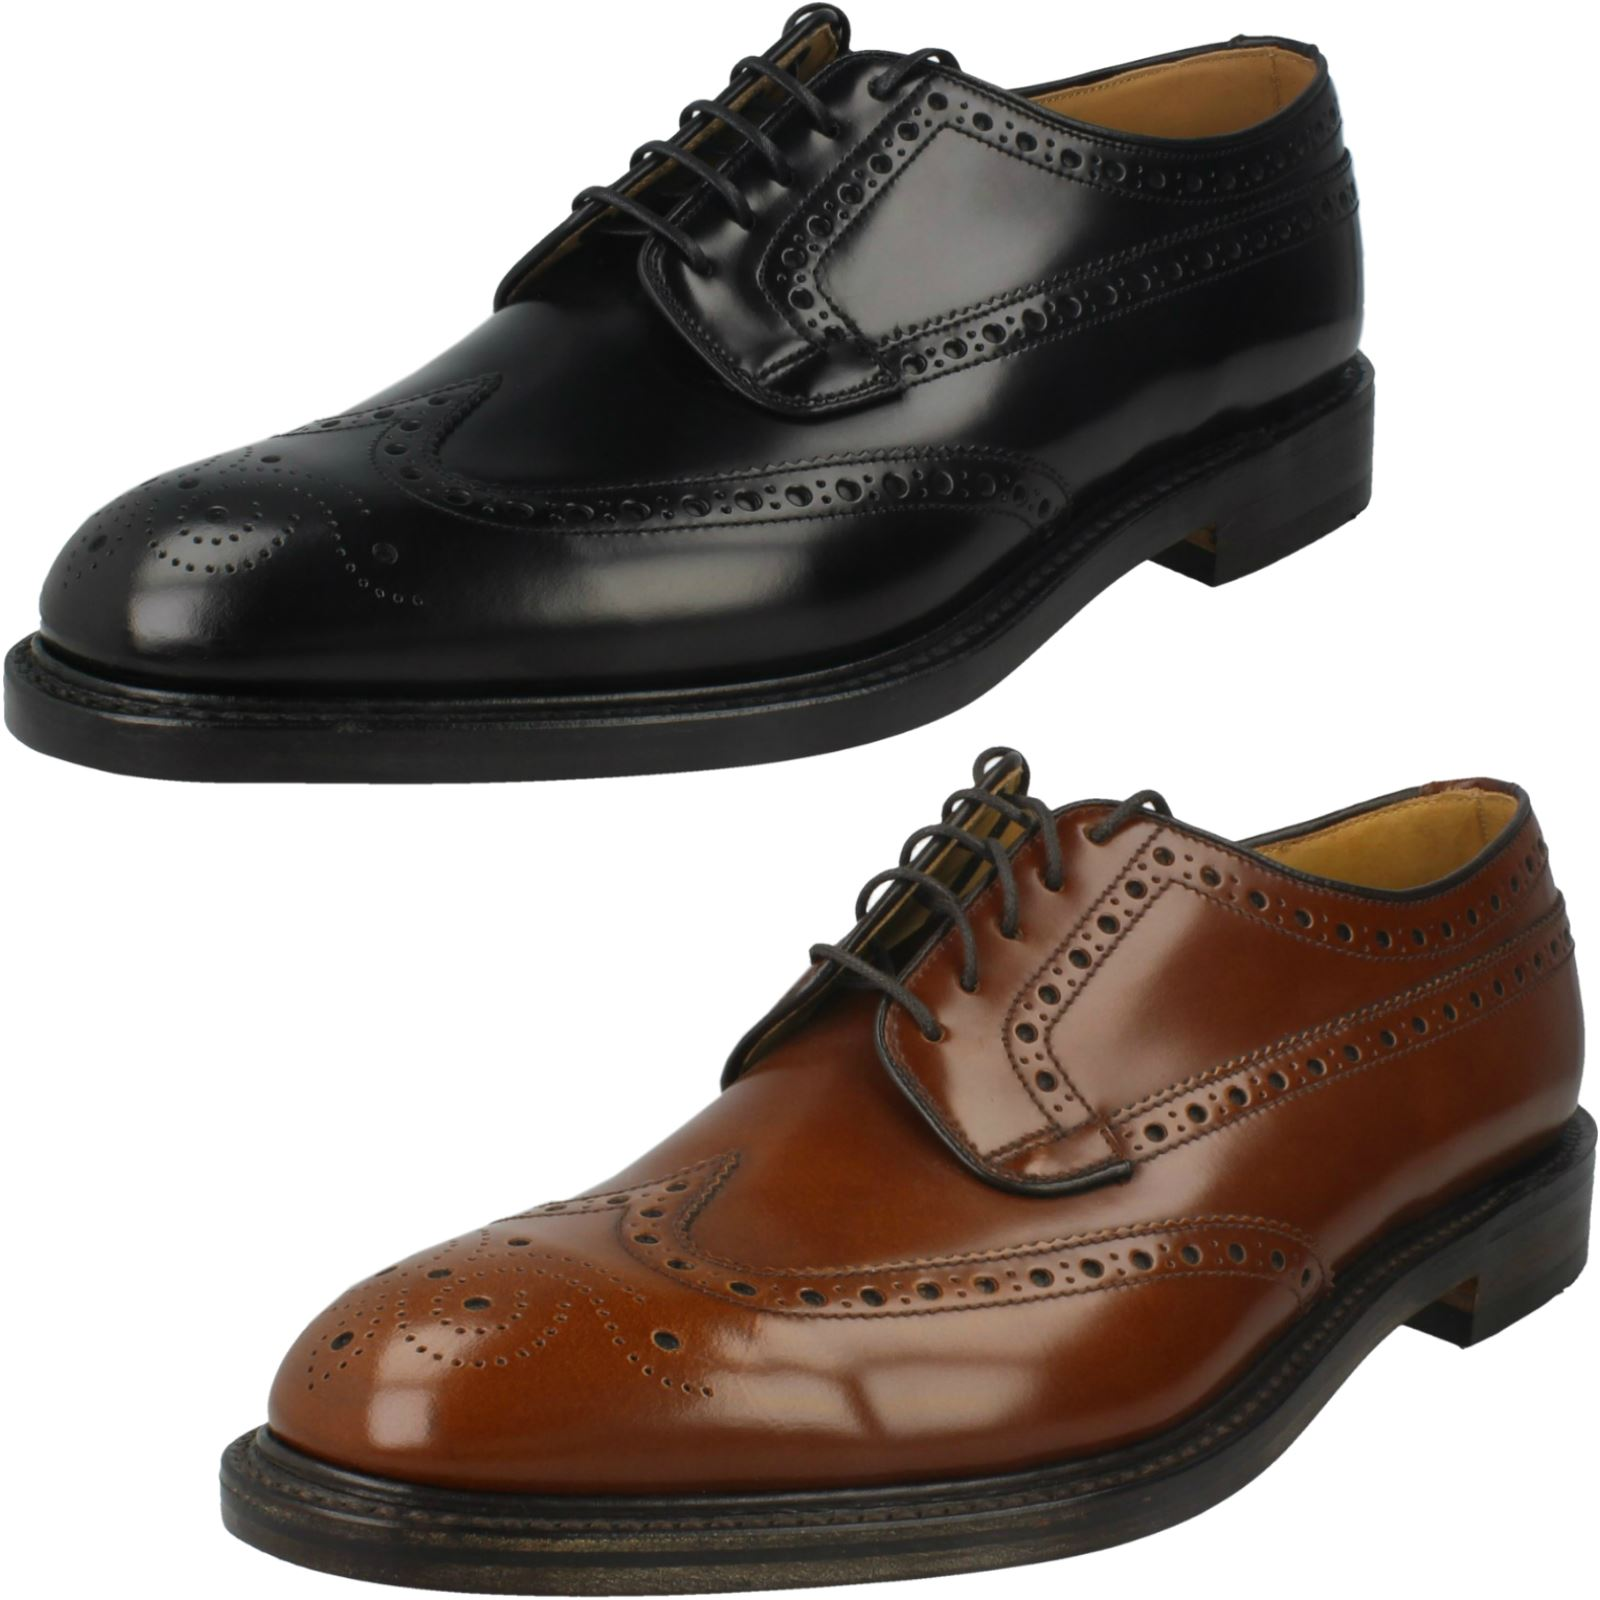 Mens Loake Smart/Formal Brogue Shoes *Braemar*